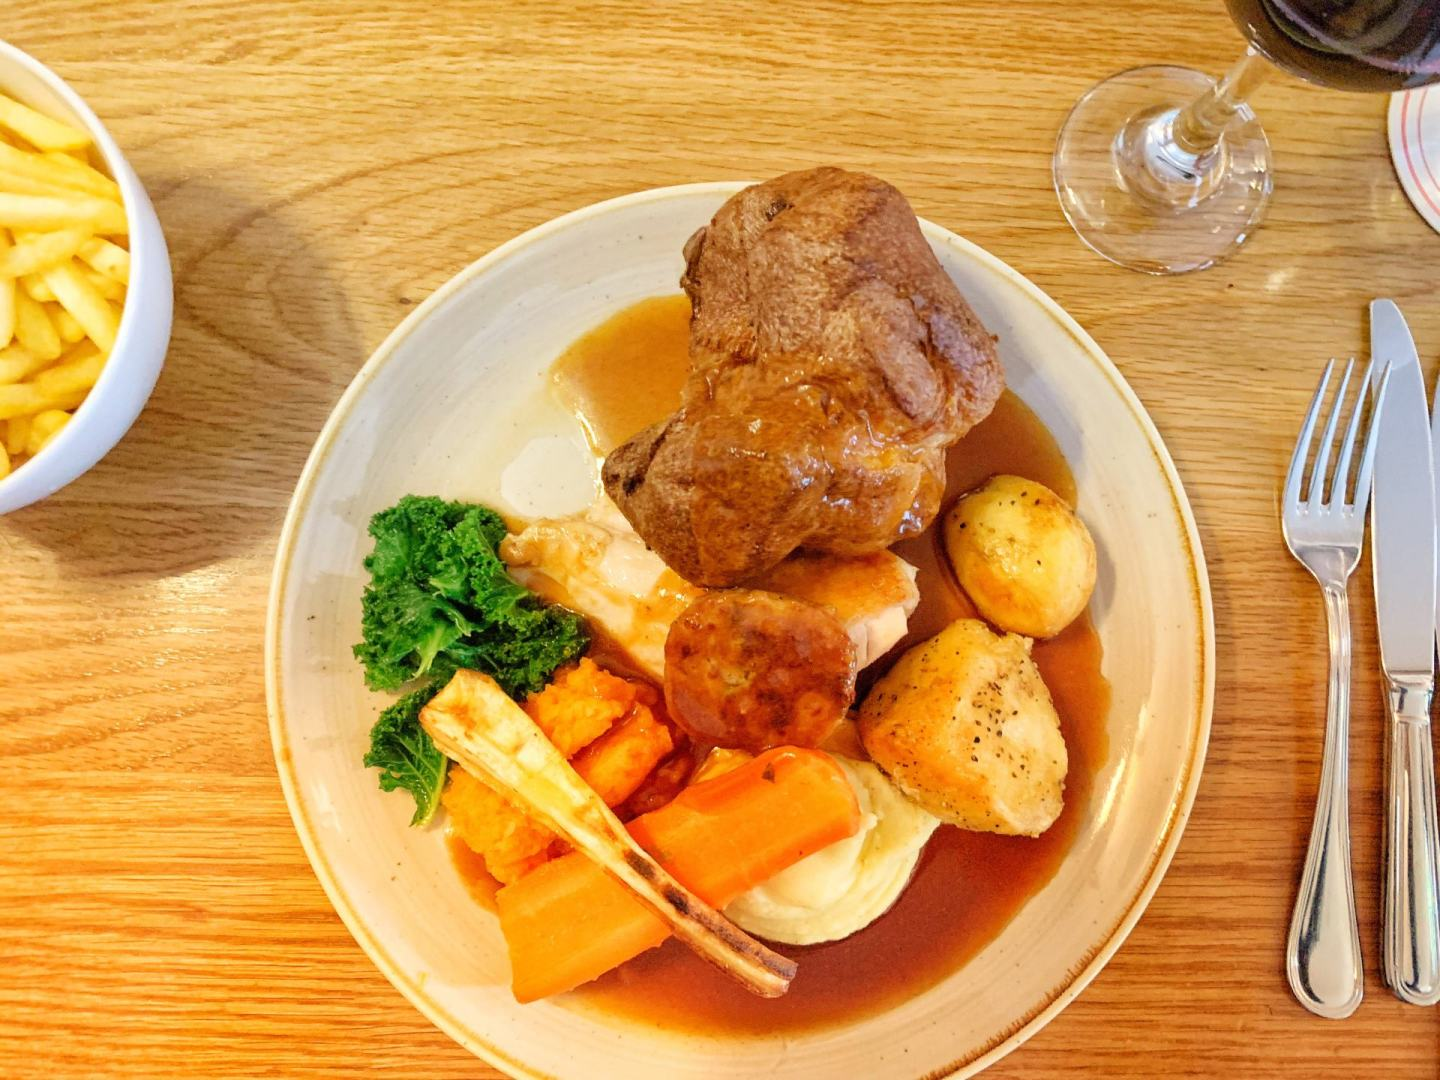 One of the best Sunday lunches in the North East at St Mary's Inn, Stannington